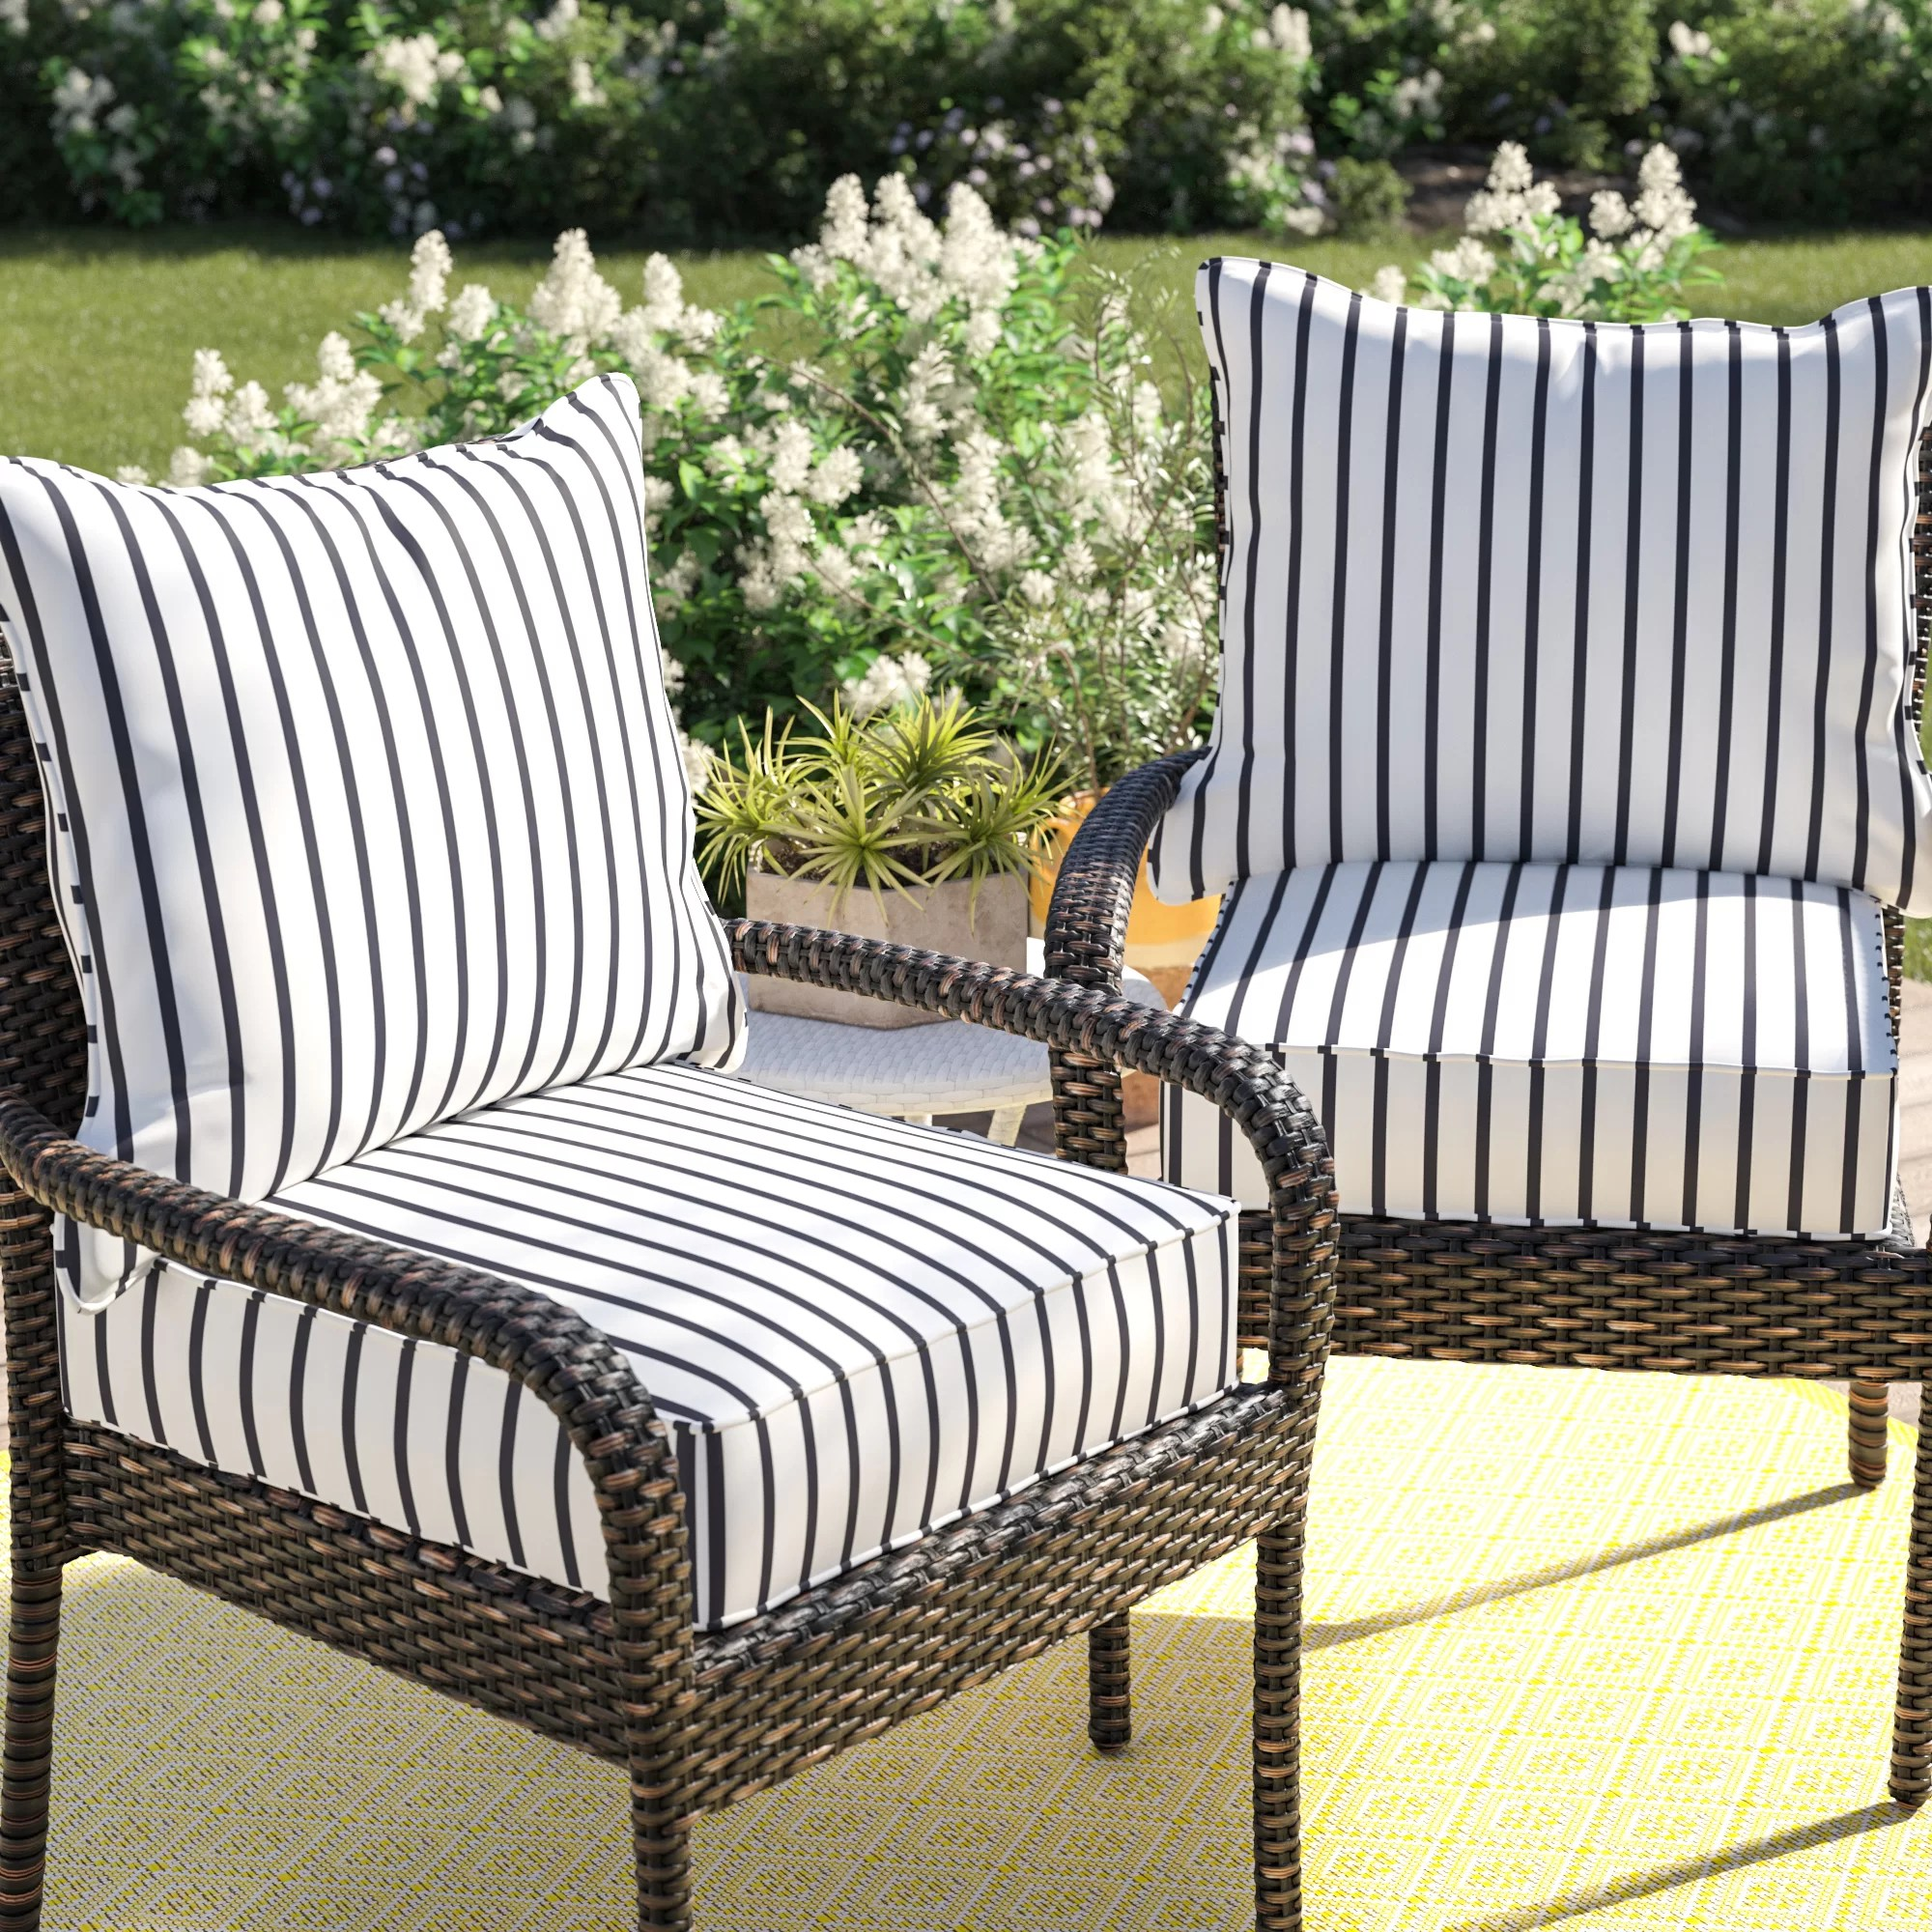 Outside Lounge Chairs Patio Lounge Chair Cushions Best Interior Furniture